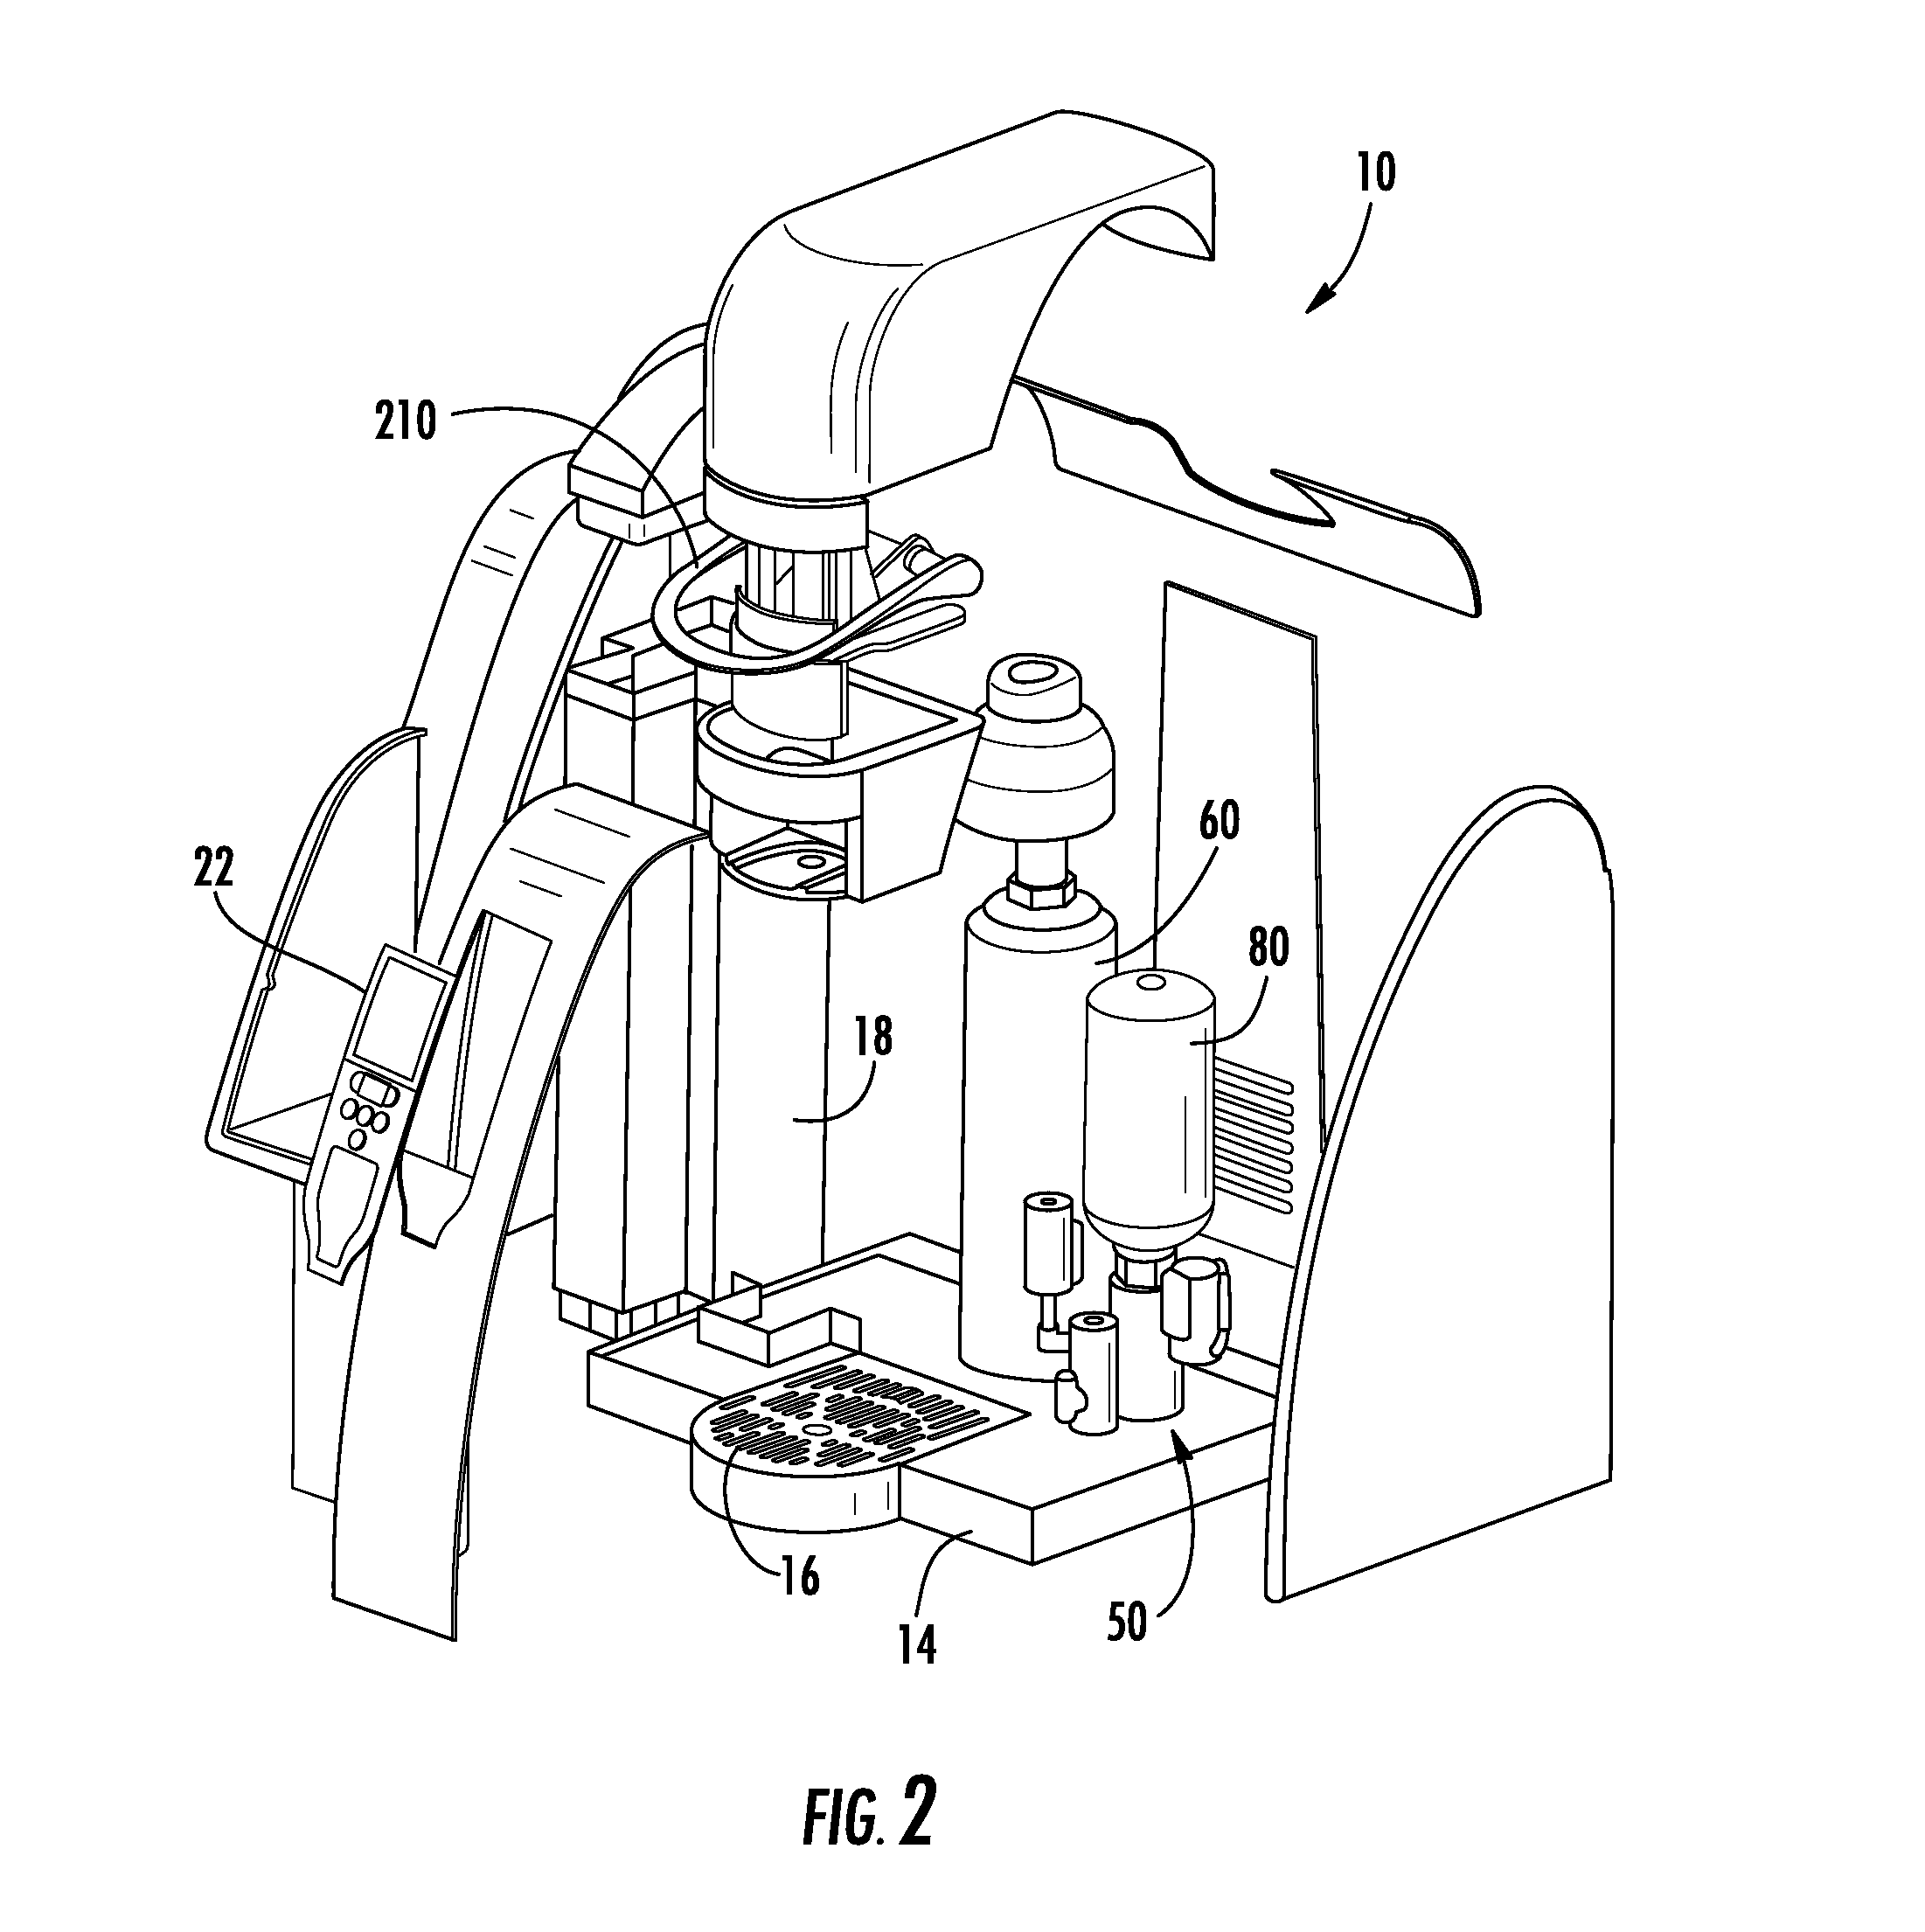 Keurig Coffee Maker Exploded View : Patent US20120107463 - Select serving and flavored sparkling beverage maker - Google Patents